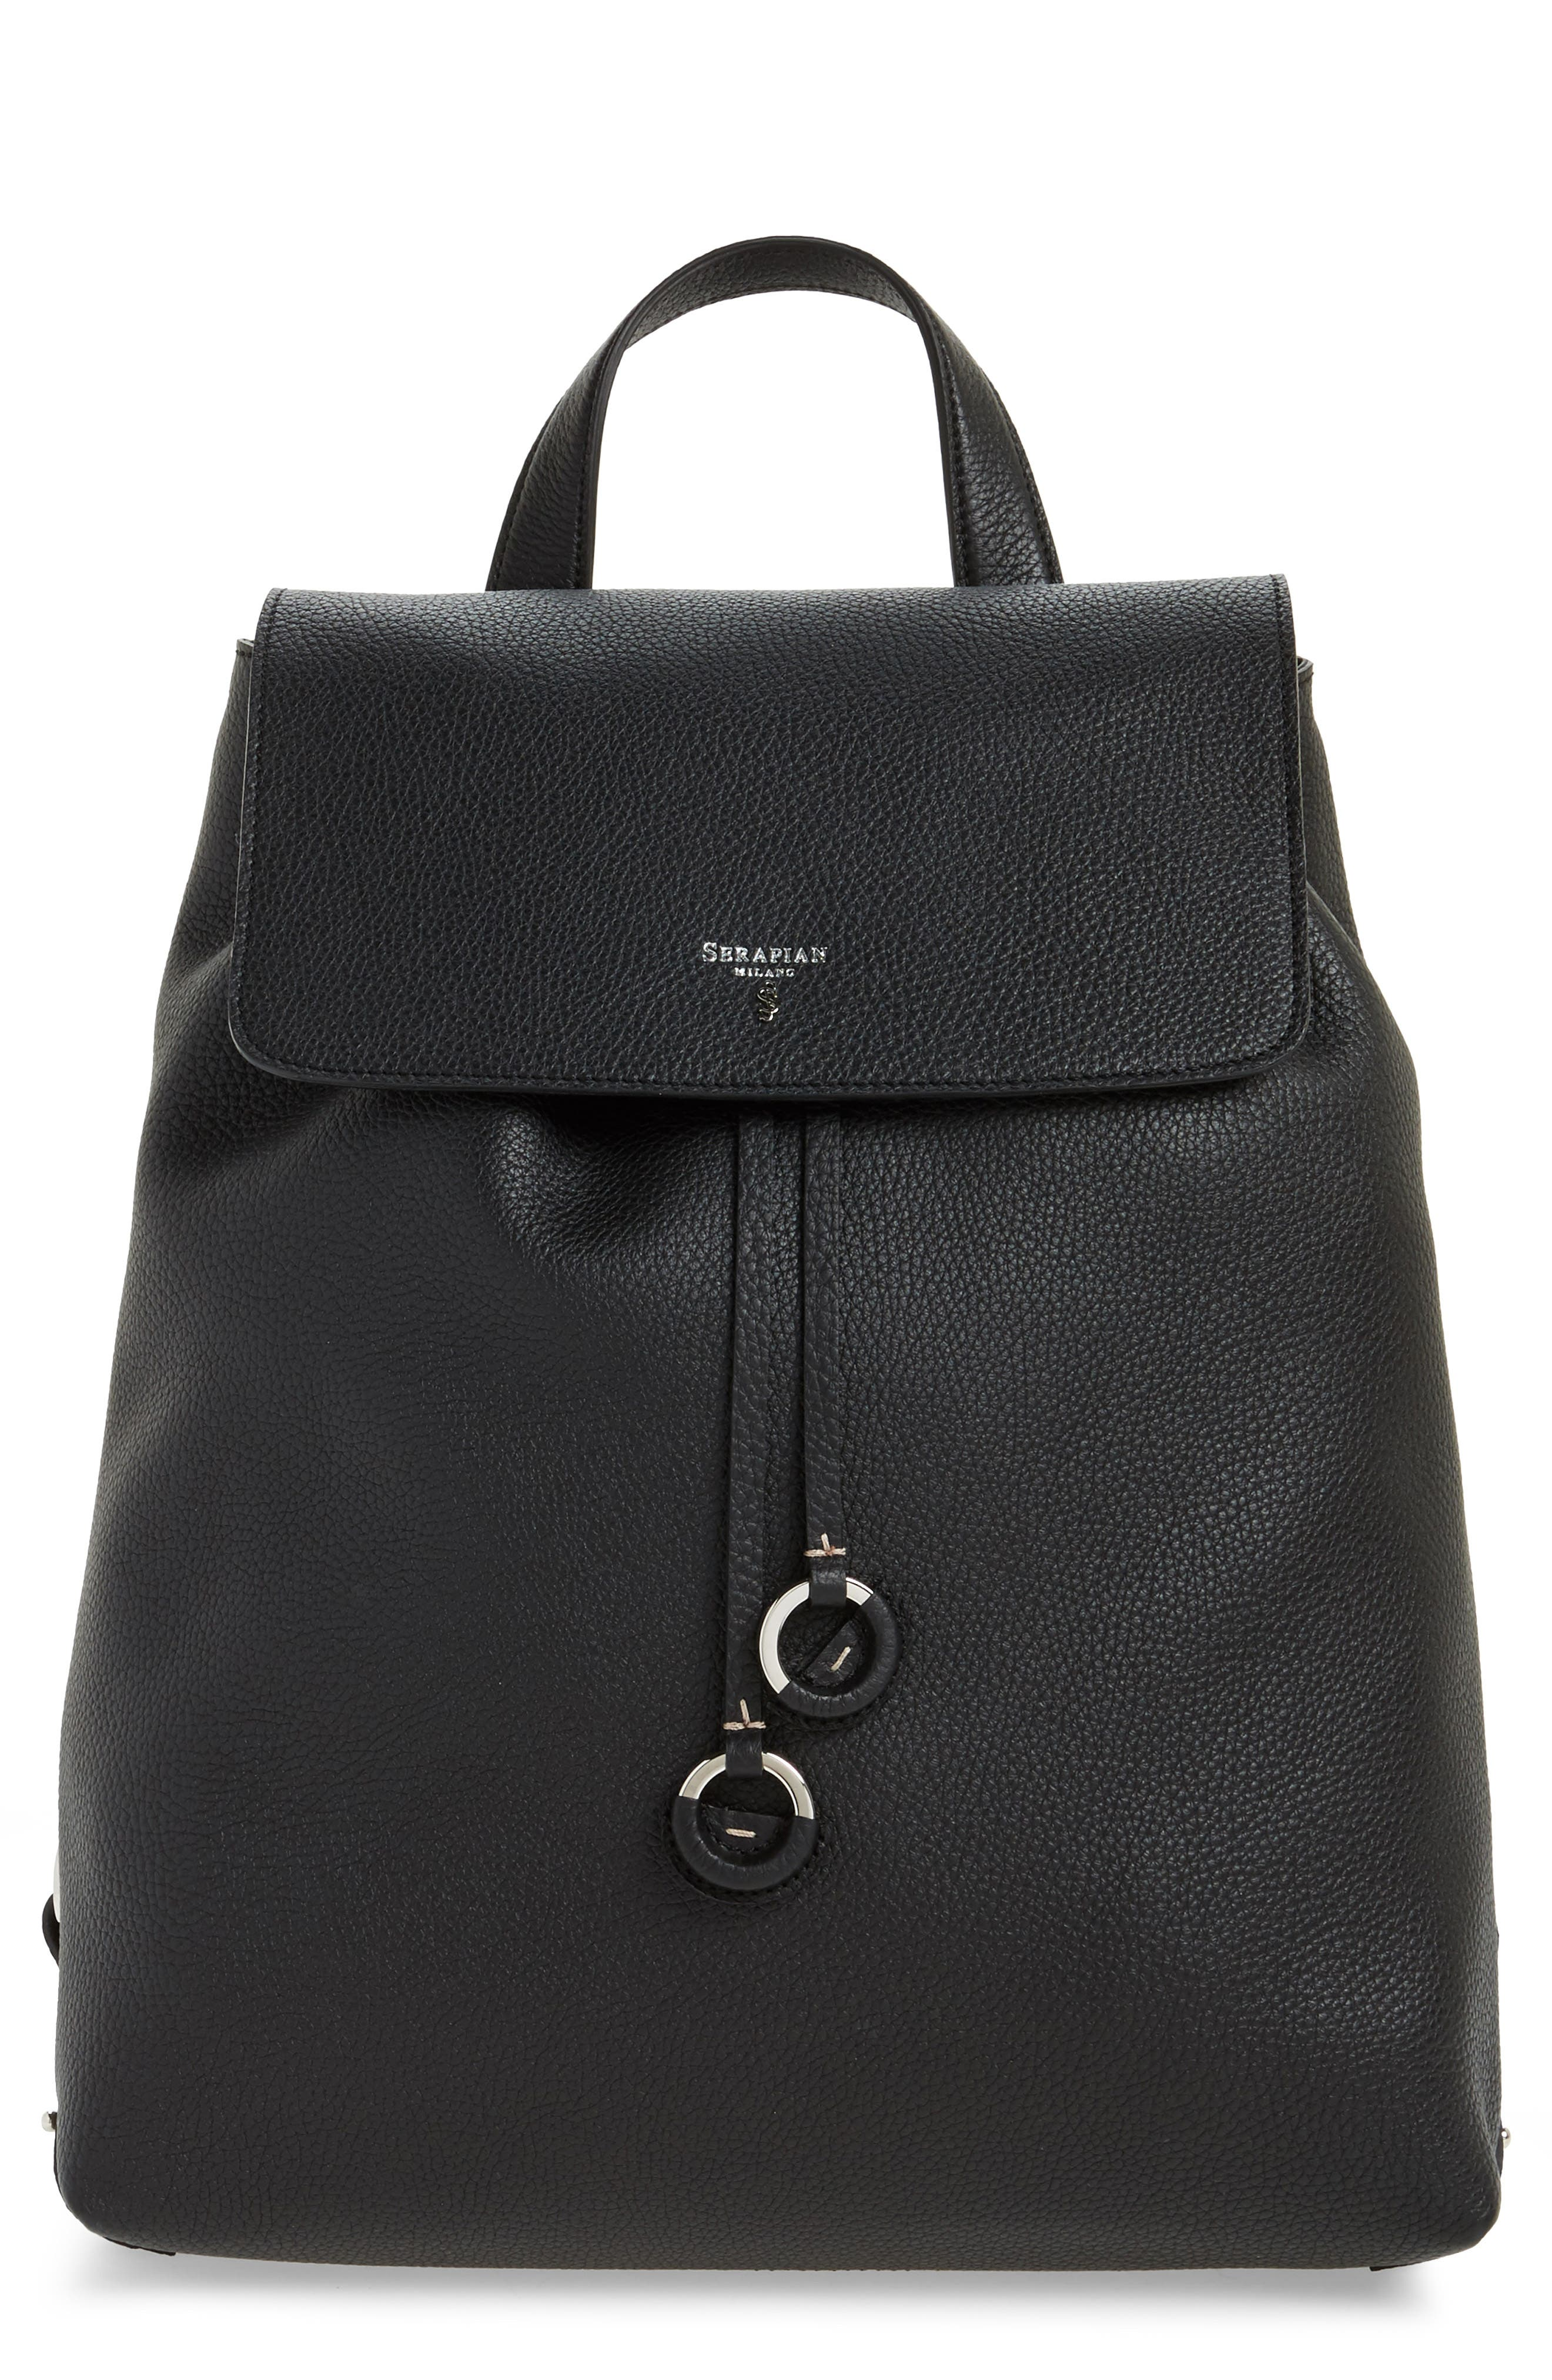 Alternate Image 1 Selected - Serapian Milano Carmen Cachemire Leather Backpack